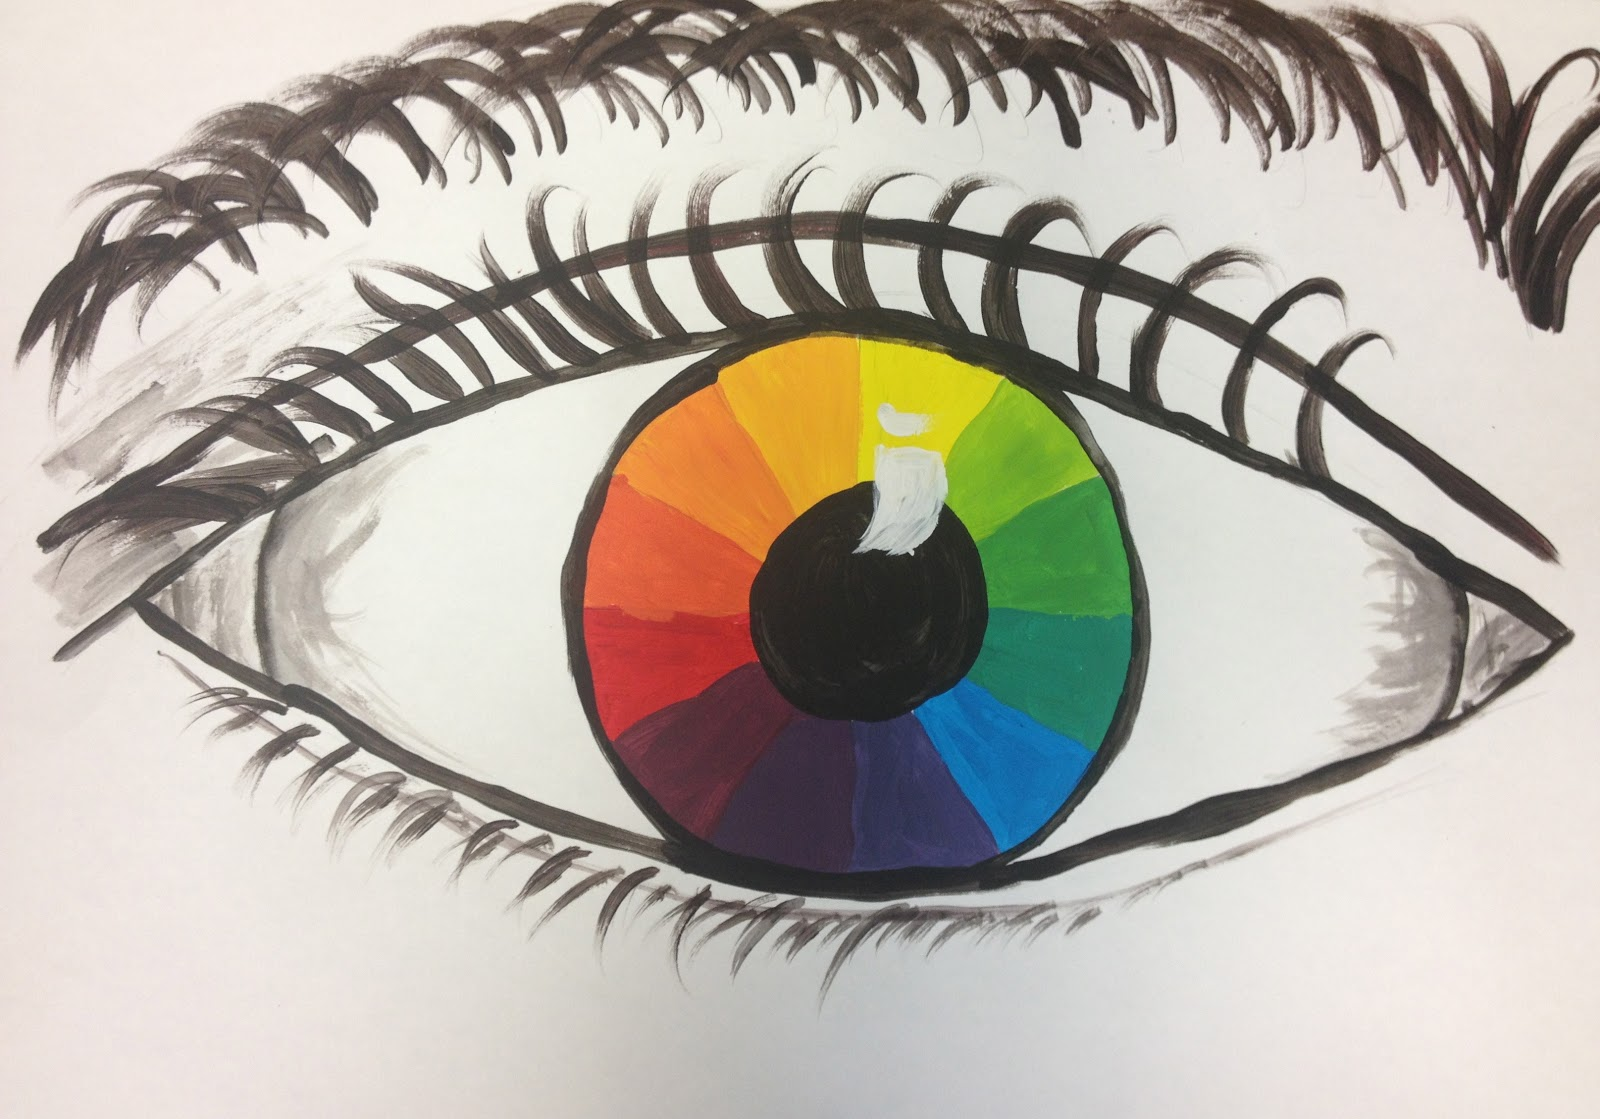 Astonishing Design Of The Color Wheel Ideas With Eye Paint Ideas With Colorful Pupil Ideas On The White Paper Ideas